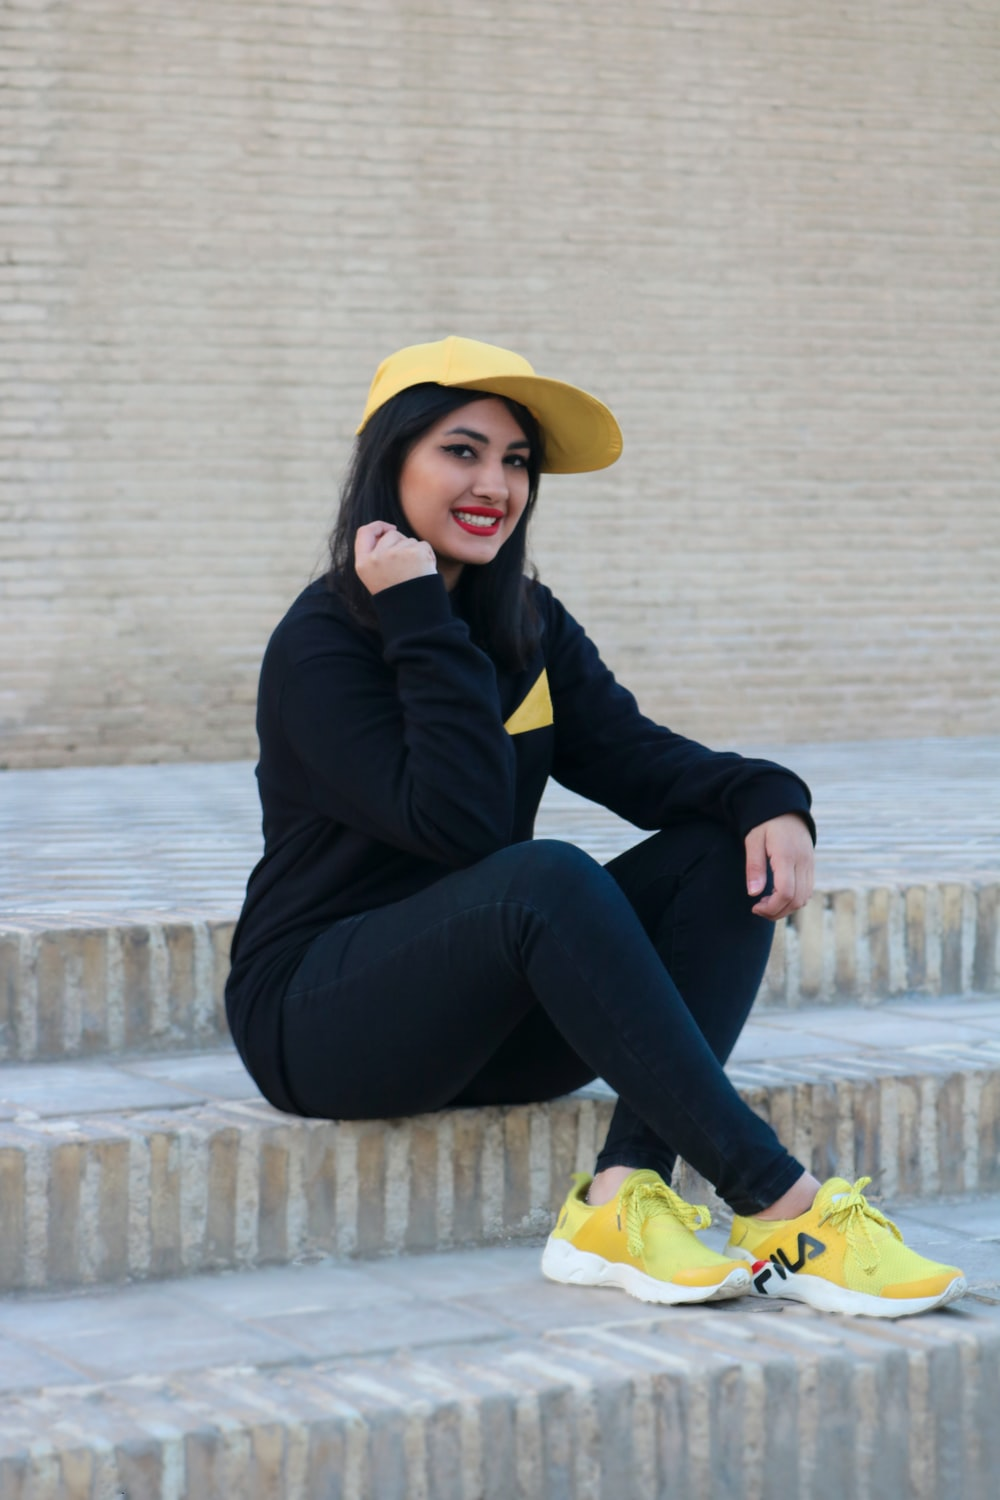 woman in black jacket and yellow sun hat sitting on concrete stairs